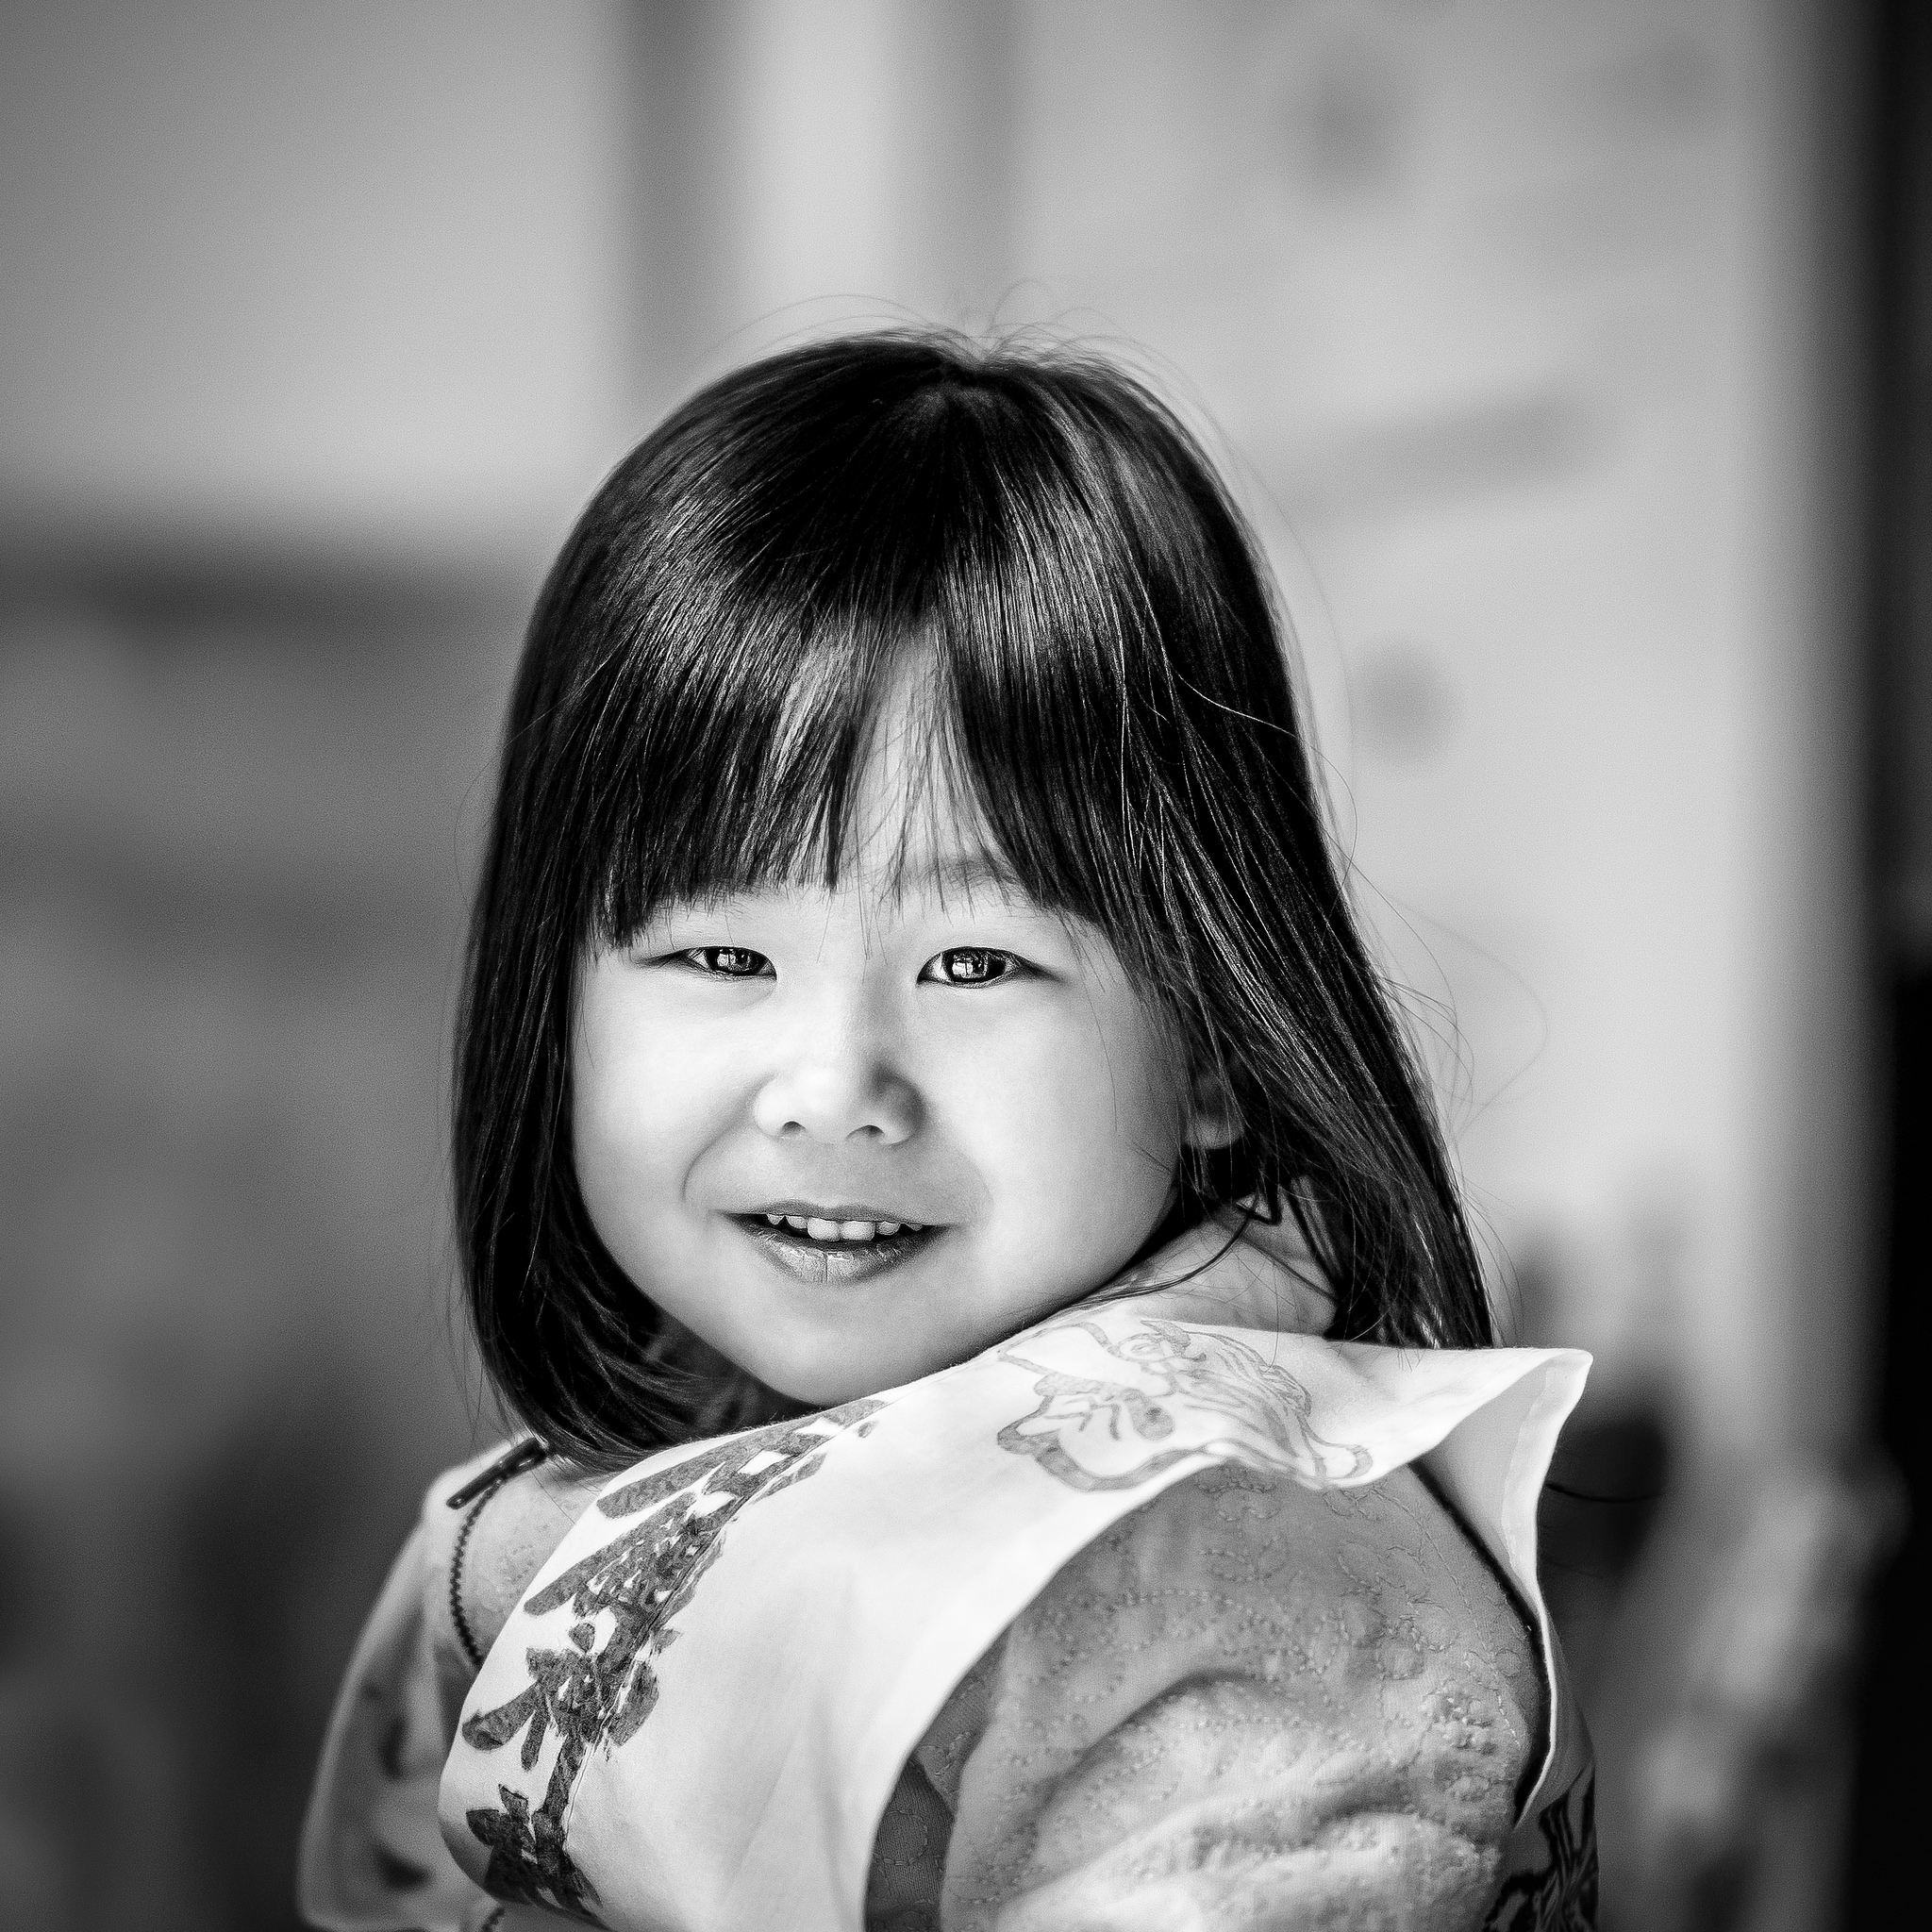 Etienne regis, photographe toulouse, Japon, Japan, voyage, kid, Japanese, enfant, natural, noir et blanc, black and white, natural light, extérieur, lumière naturelle